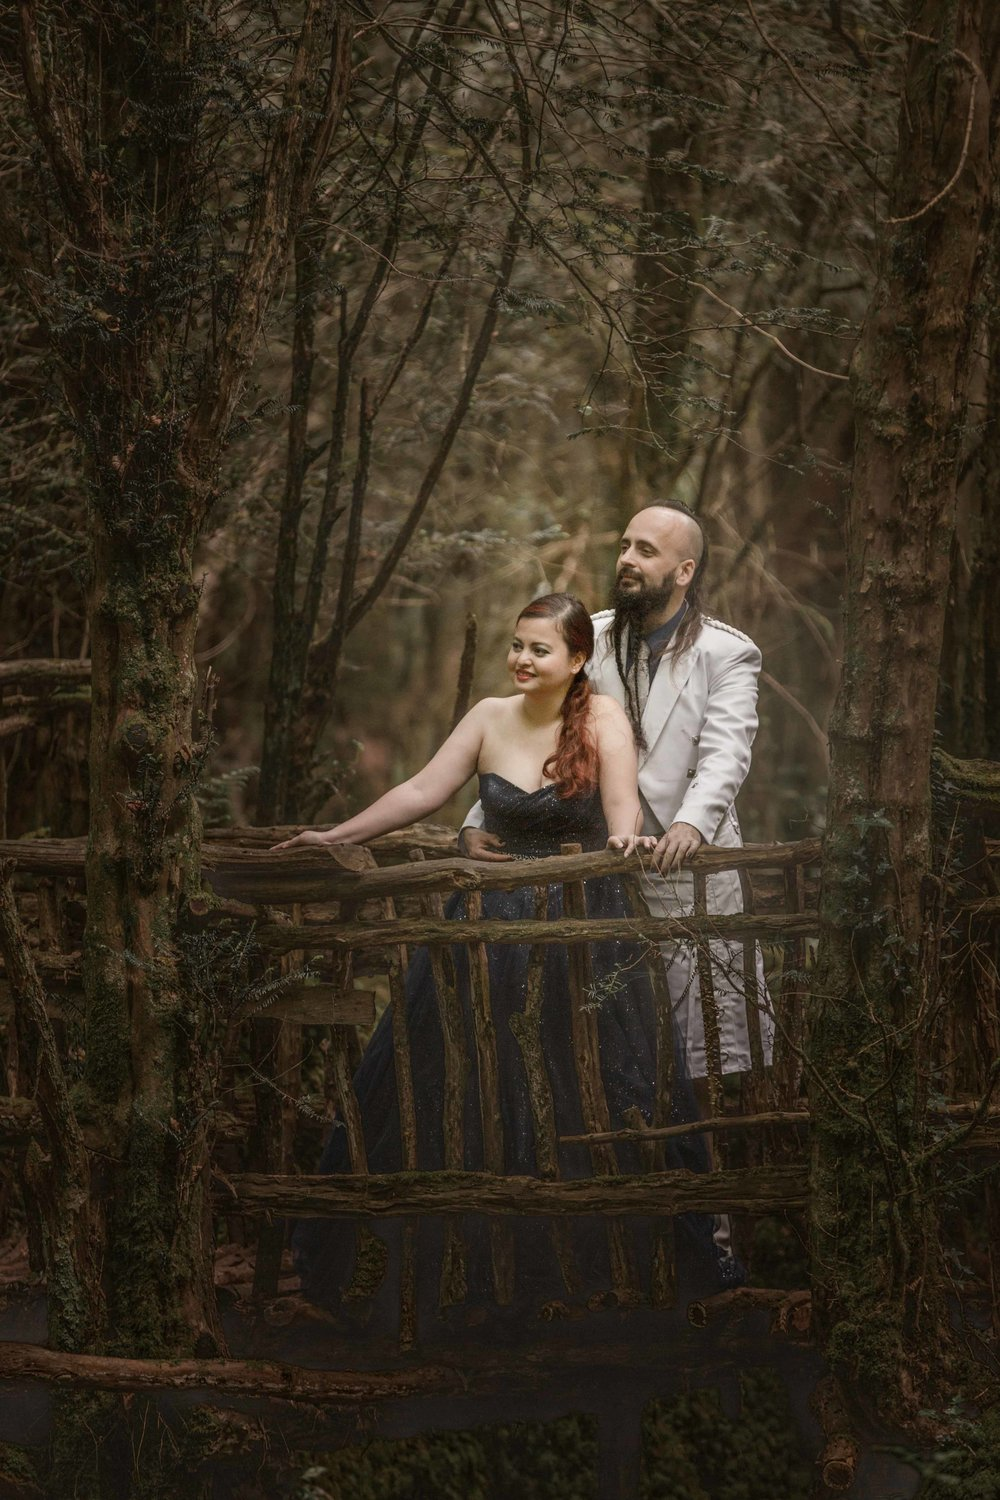 Puzzlewood-fairytale-fairy-forest-wood-prewedding-photoshoot-star-wars-couple-shoot-asian-wedding-photographer-natalia-smith-photography-4.jpg